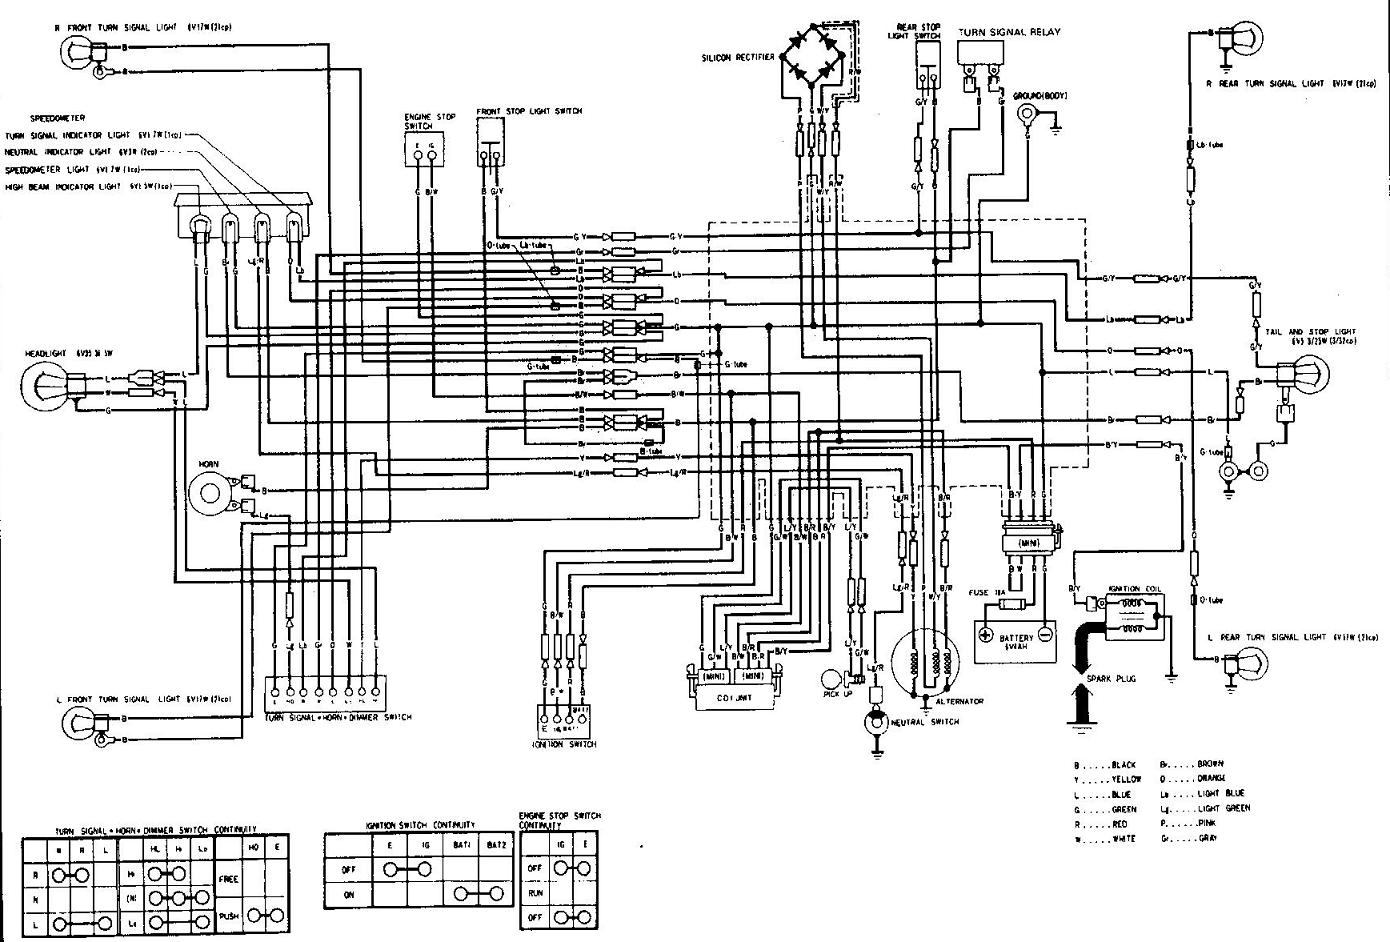 Honda Trail 110 Wiring Diagram - Wiring Diagram